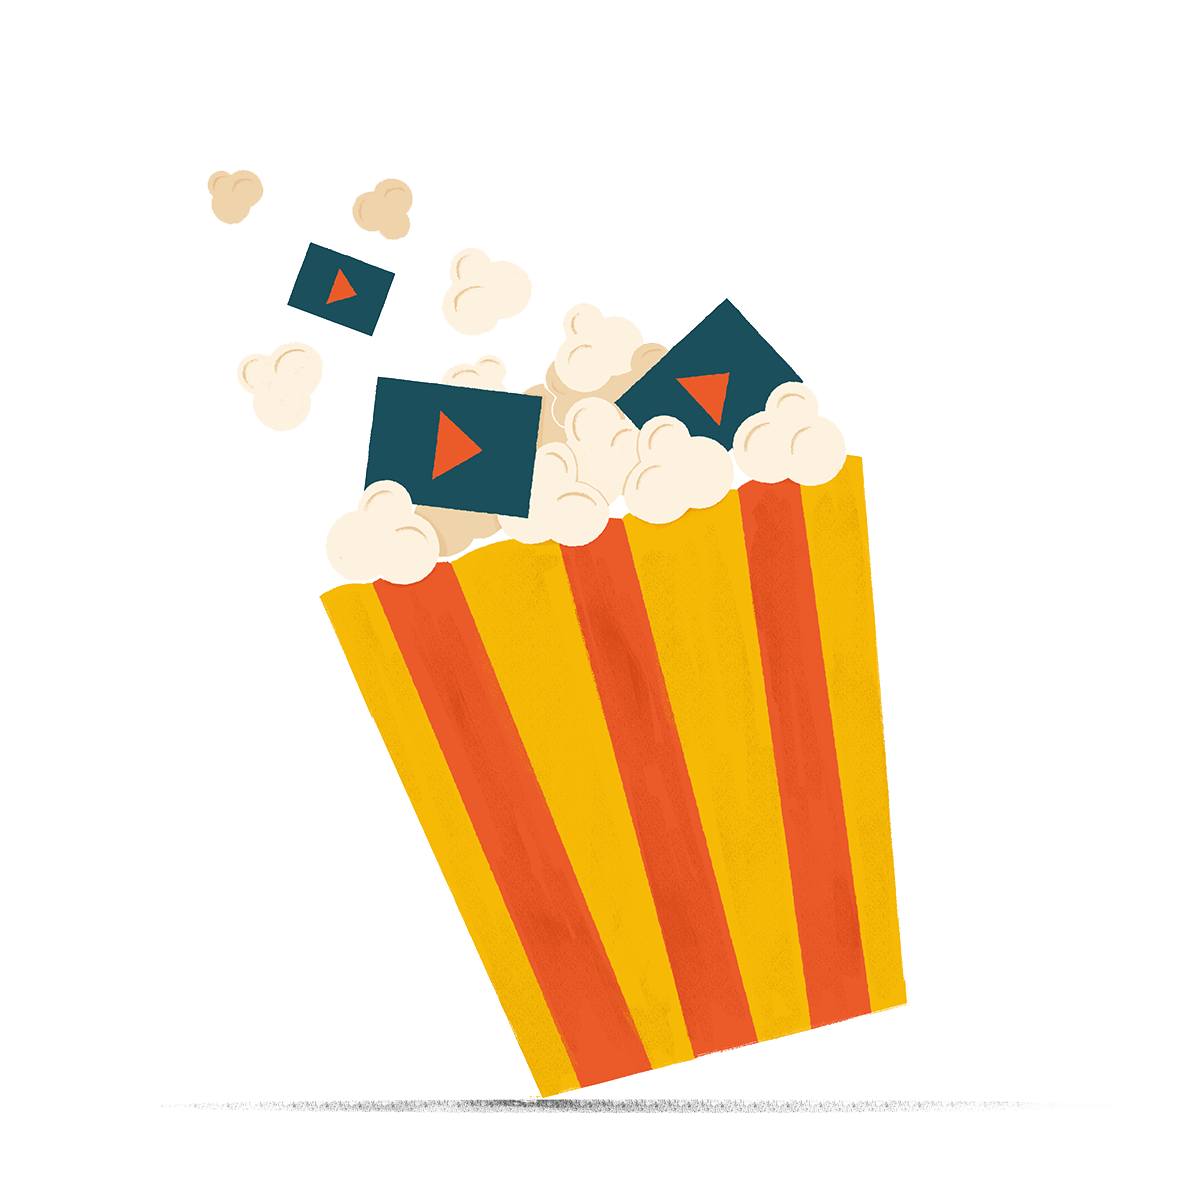 Tub of popcorn with video clips mixed in to represent the snackable and binge-worthy nature of episodic content, while also drawing on the nostalgia of going to the movies.